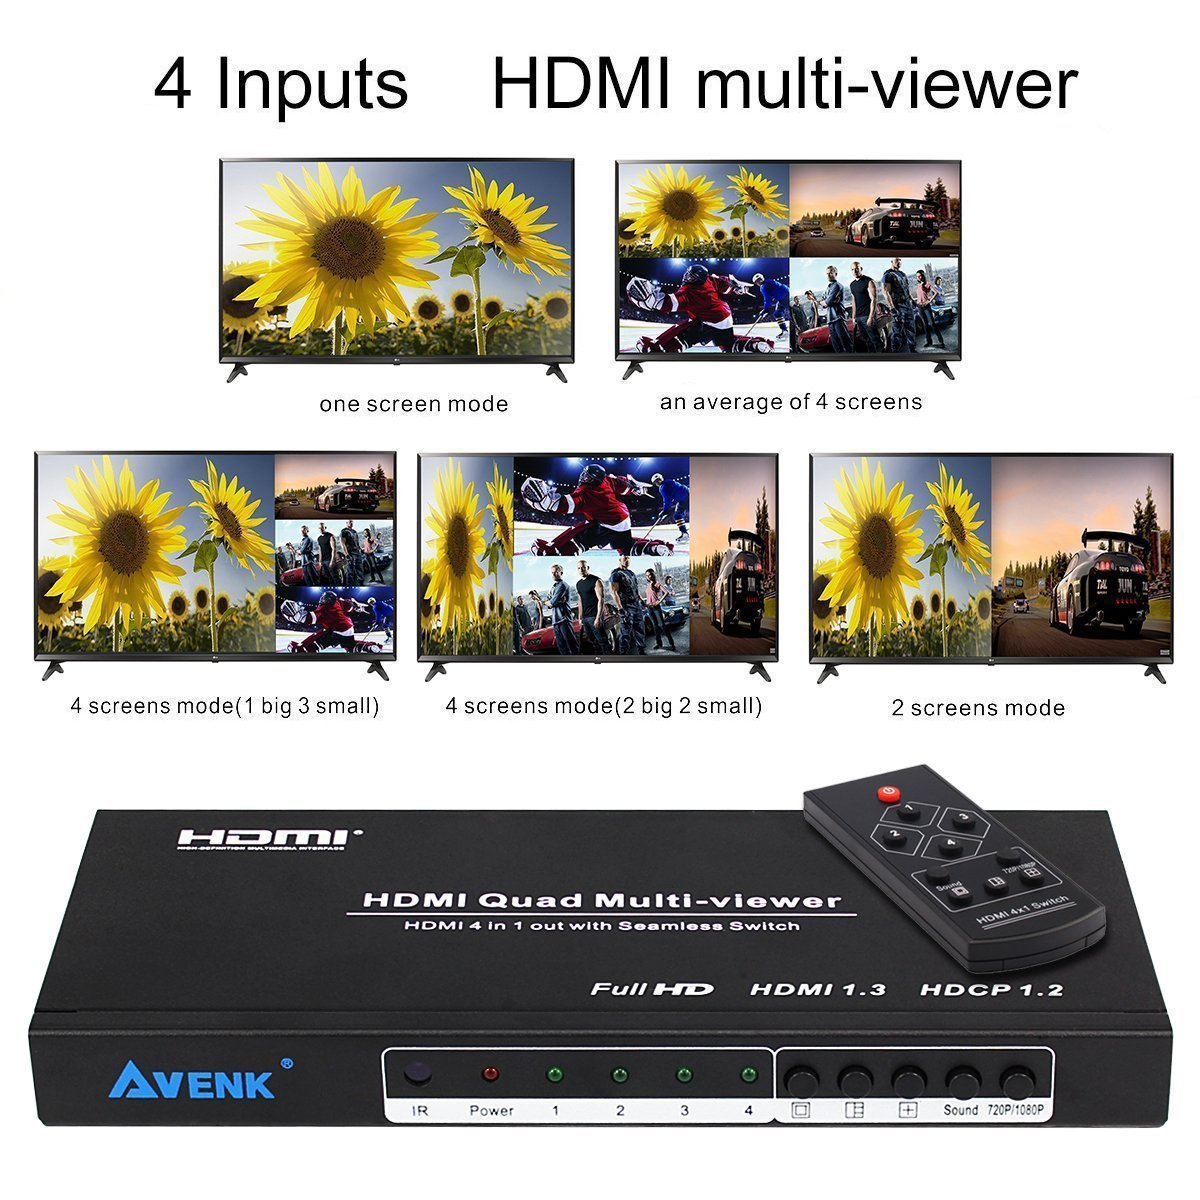 AVENK Quad Multi-Viewer 4x1 HDMI Switcher 4 Ports with Seamless Switch and  IR Remote Support 1080P HDMI 1 3a